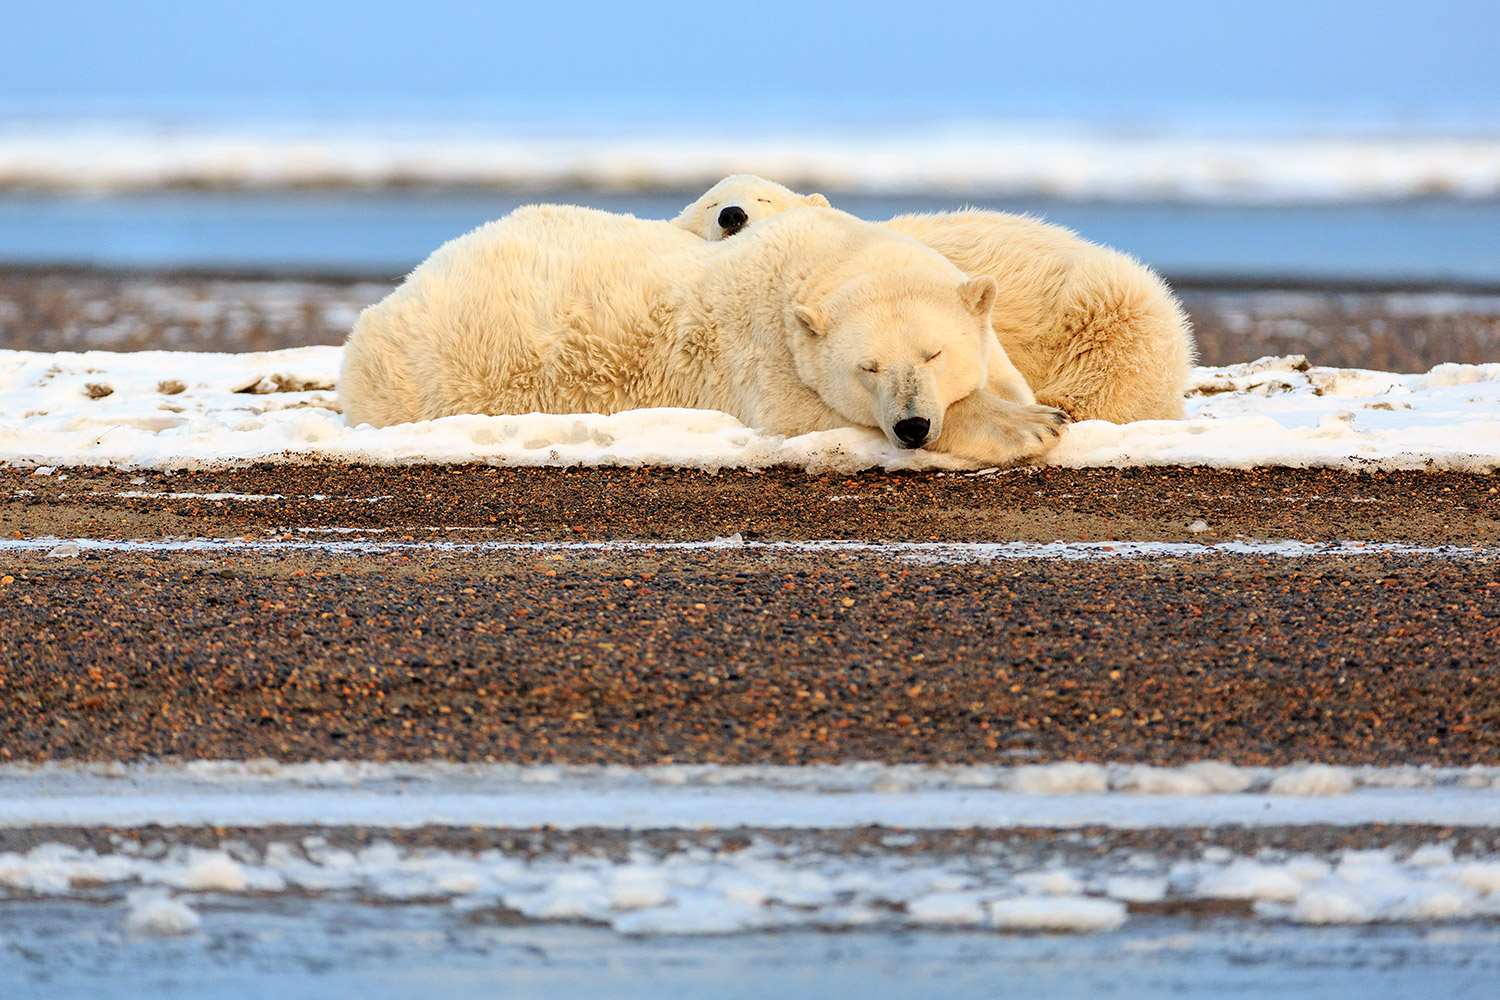 Polar-bear-sow-and-cub-sleeping,-Arctic-National-Wildlife-Refuge,-Alaska,-USA